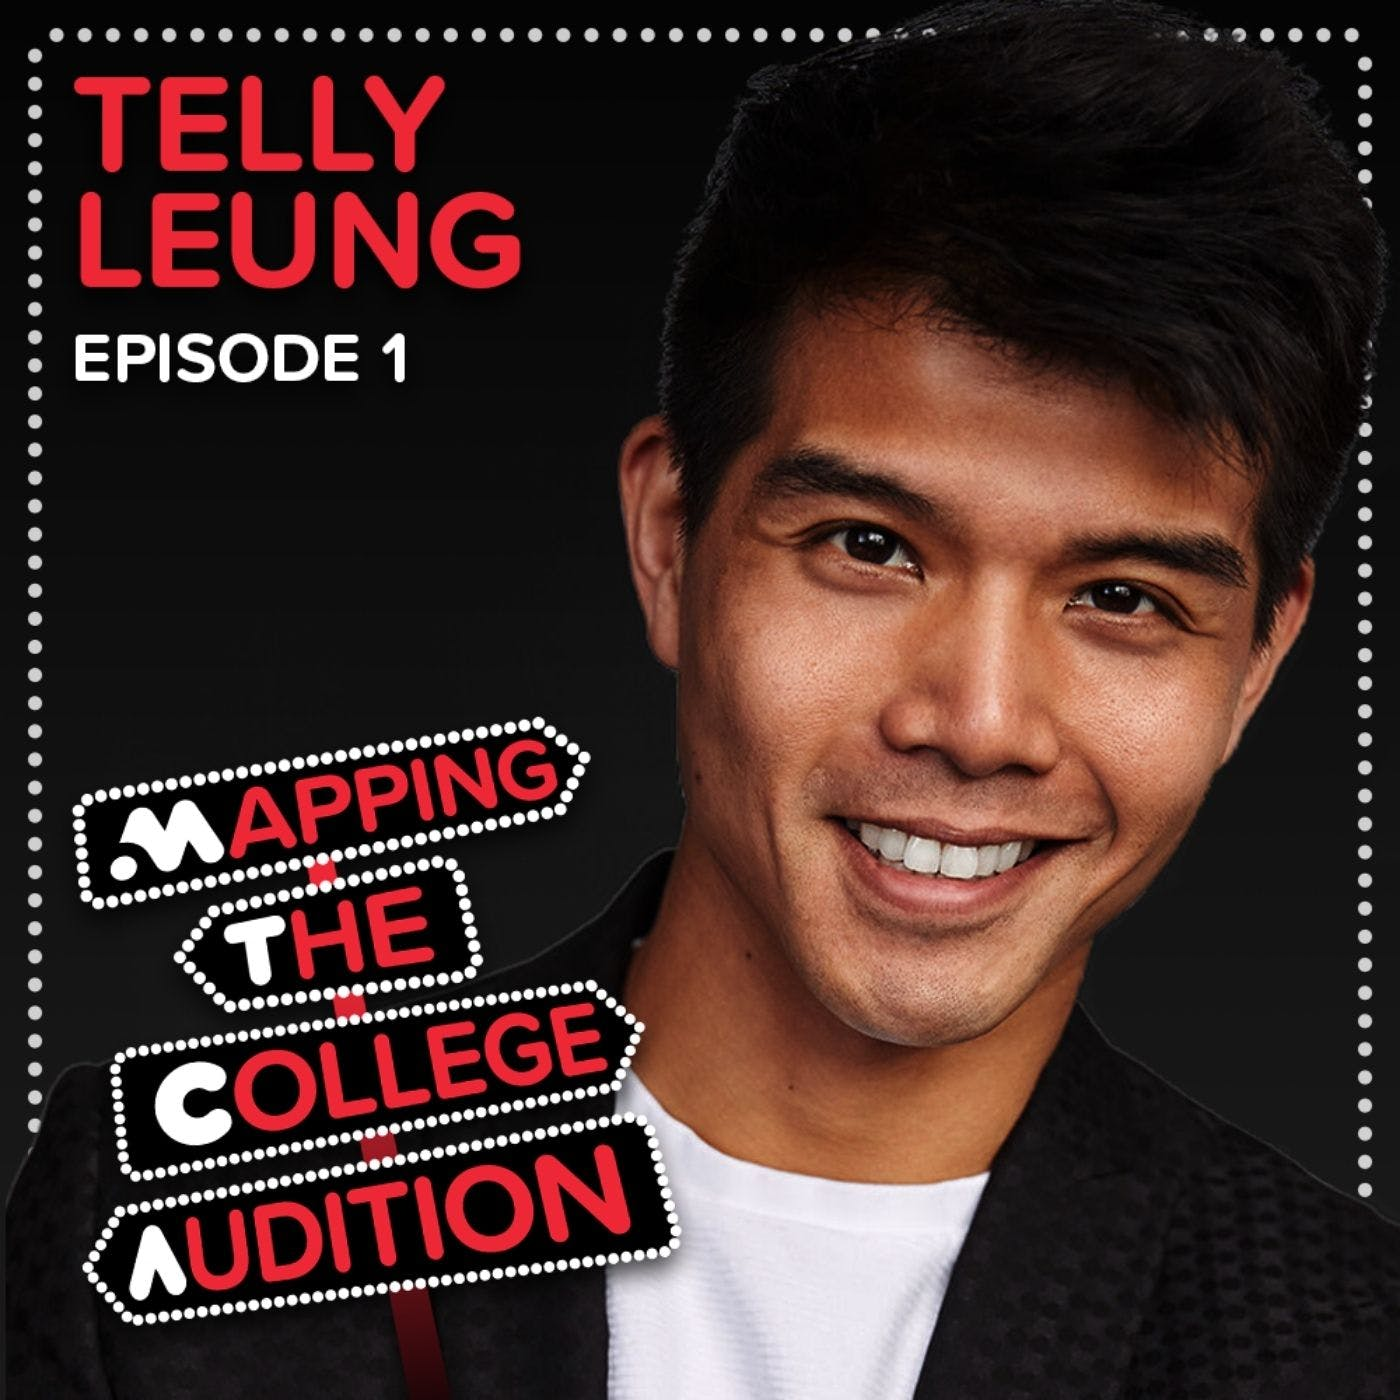 Ep. 1 (Artist Exploration): Telly Leung (Broadway's Aladdin and Glee) on his road to Carnegie Mellon, Parental Worry, & Boldness in the Age of Technology